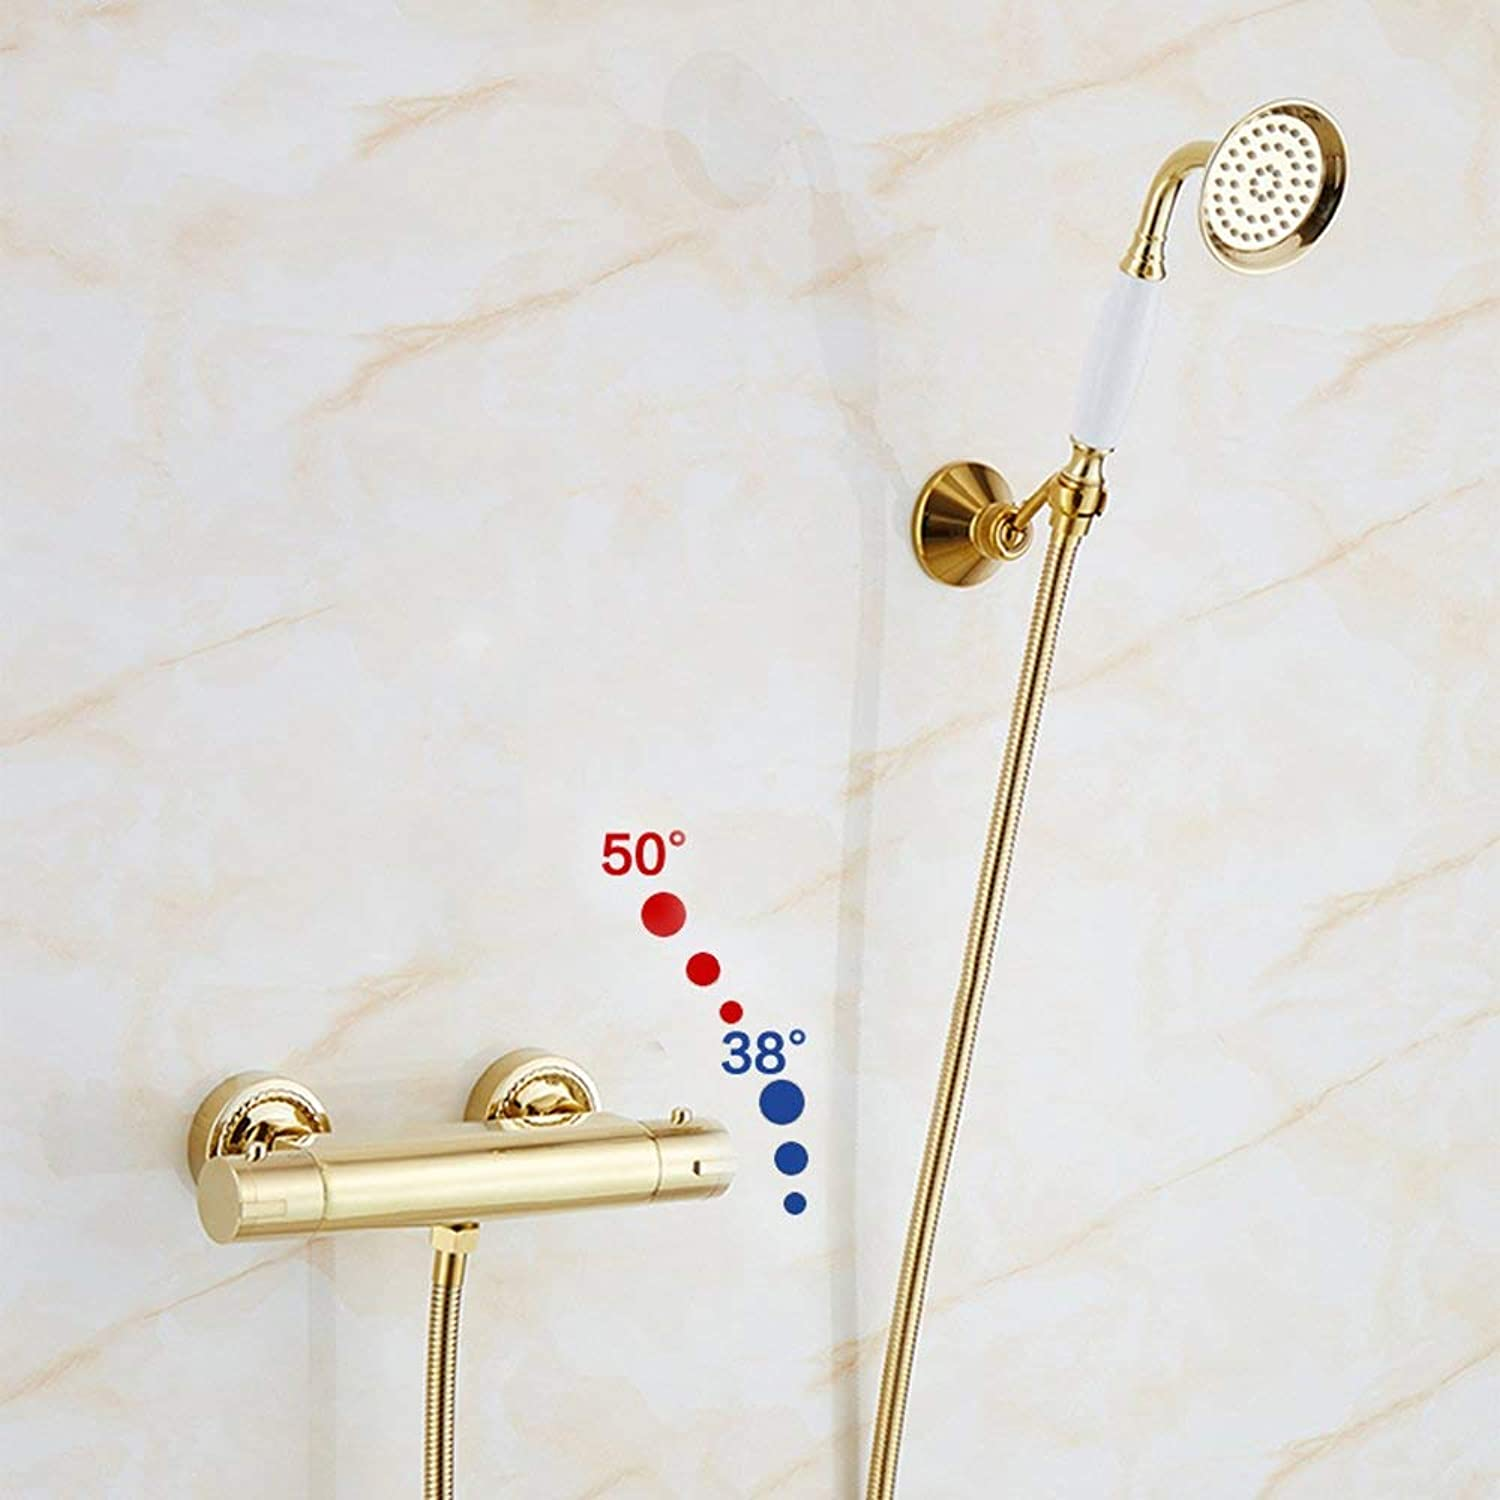 Bathroom Kitchen Sink Faucet,golden Shower Shower Set Continental Copper Simple hot and Cold Hand-held Shower Faucet.